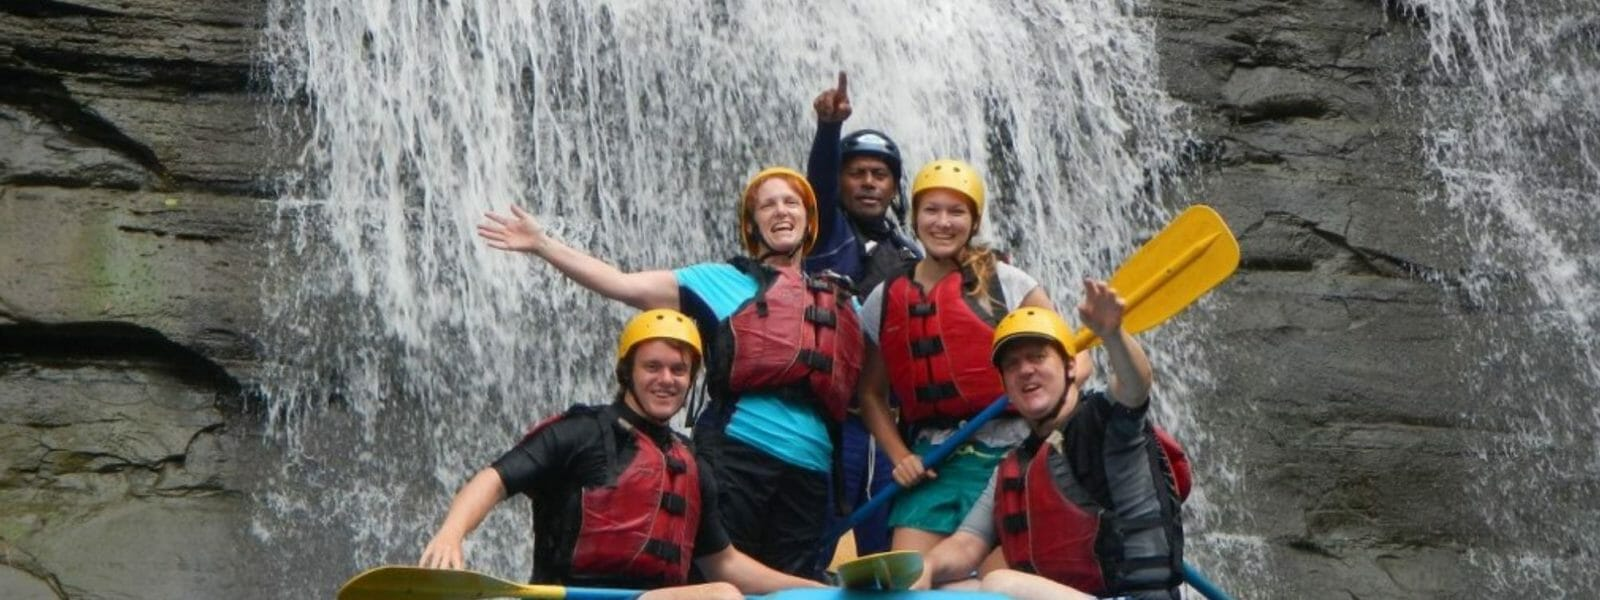 Rivers Fiji white water rafting in the remote Navua River in Fiji